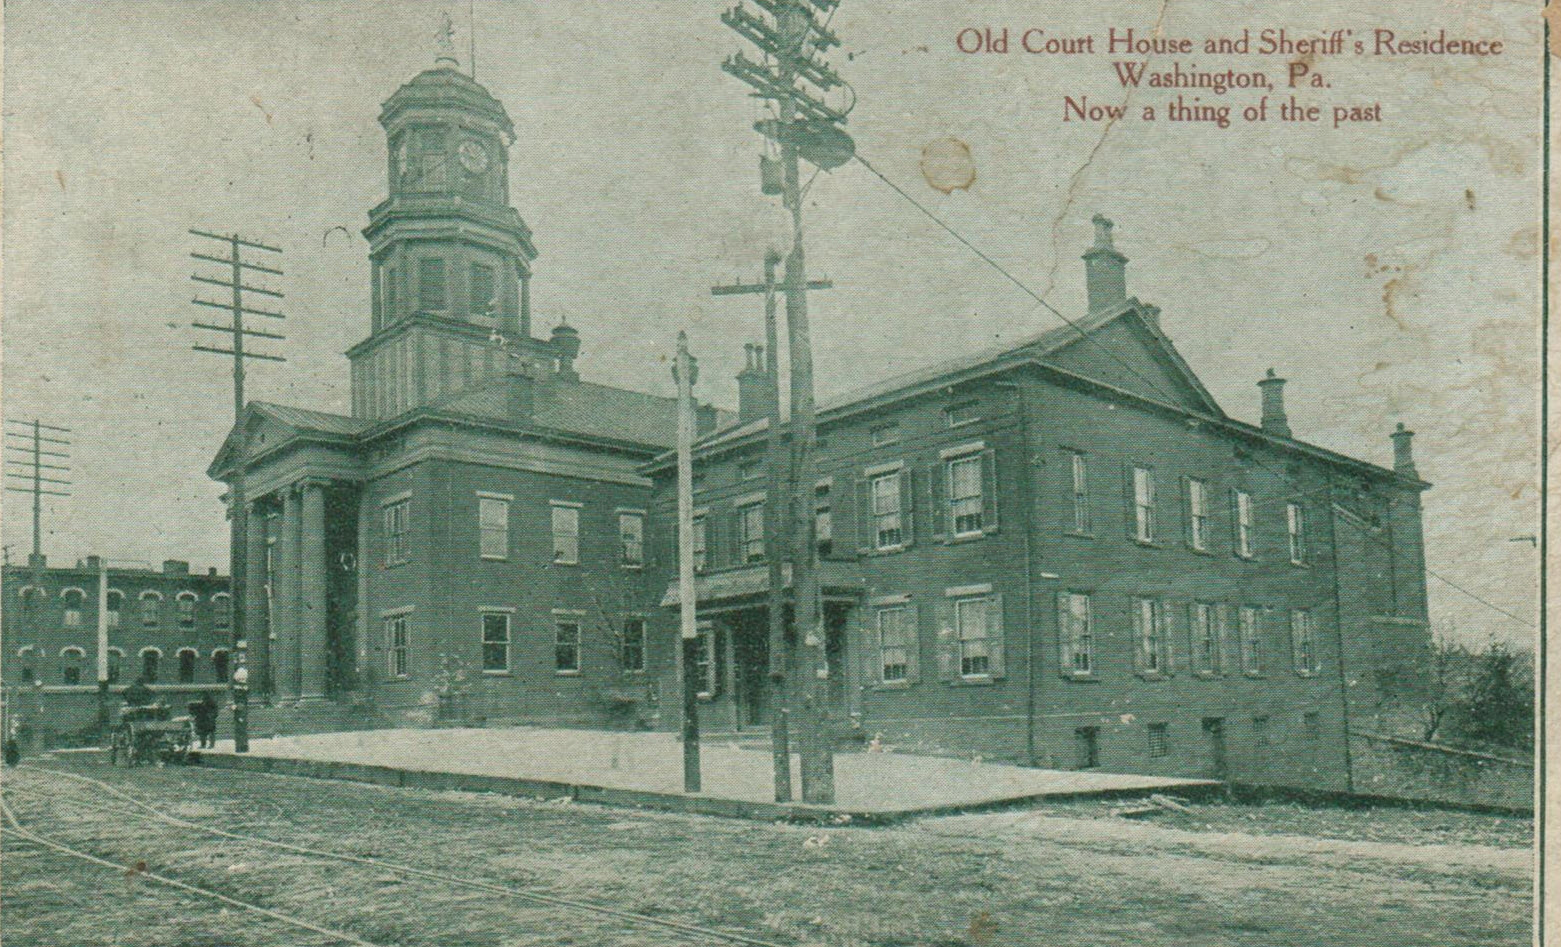 old-court-house-and-sheriff-residence